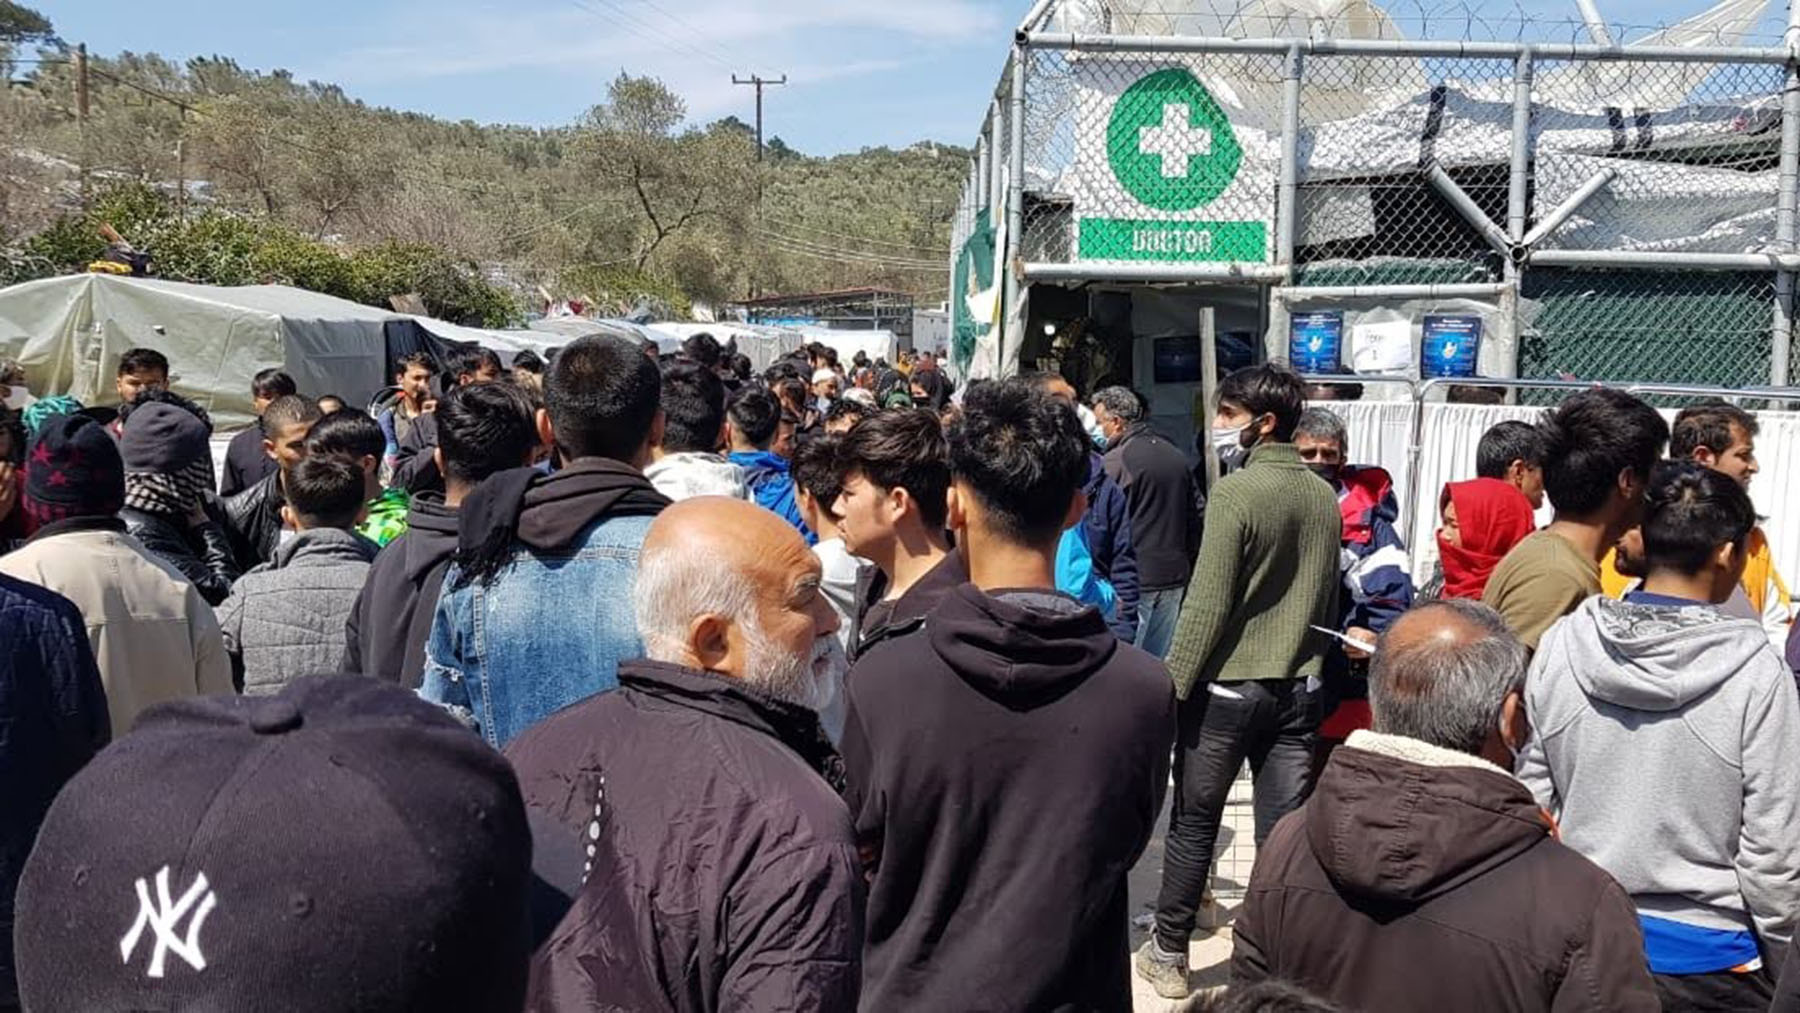 Residents of the Moria camp on the island of Lesbos. Residents of the camp frequently do not practice social distancing measures. (Photo courtesy of the Moria Coronavirus Awareness Team)